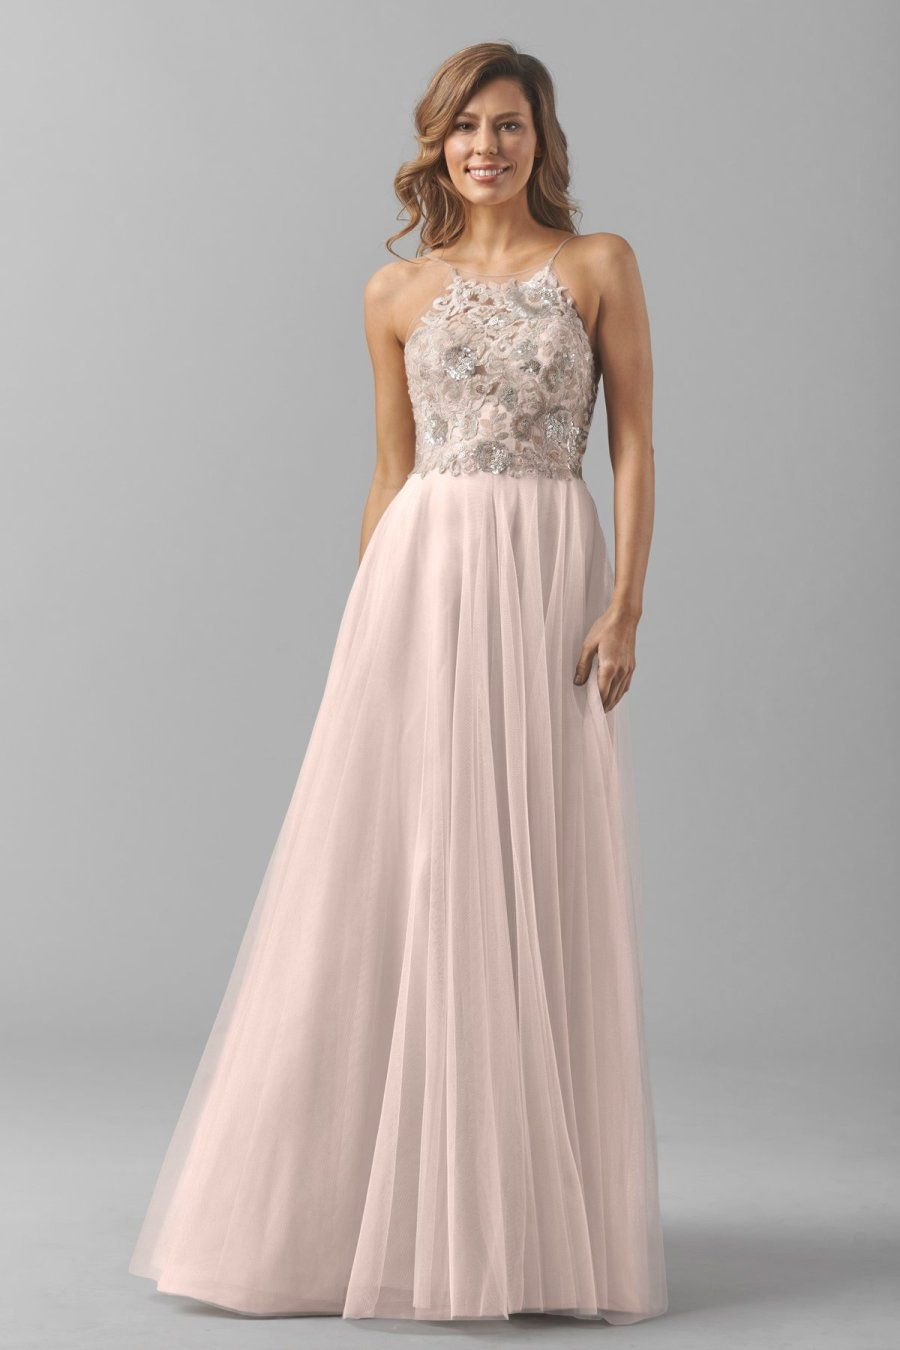 Get the look taylor swift 39 s blush gold reem acra maid for Maid of honor wedding dresses